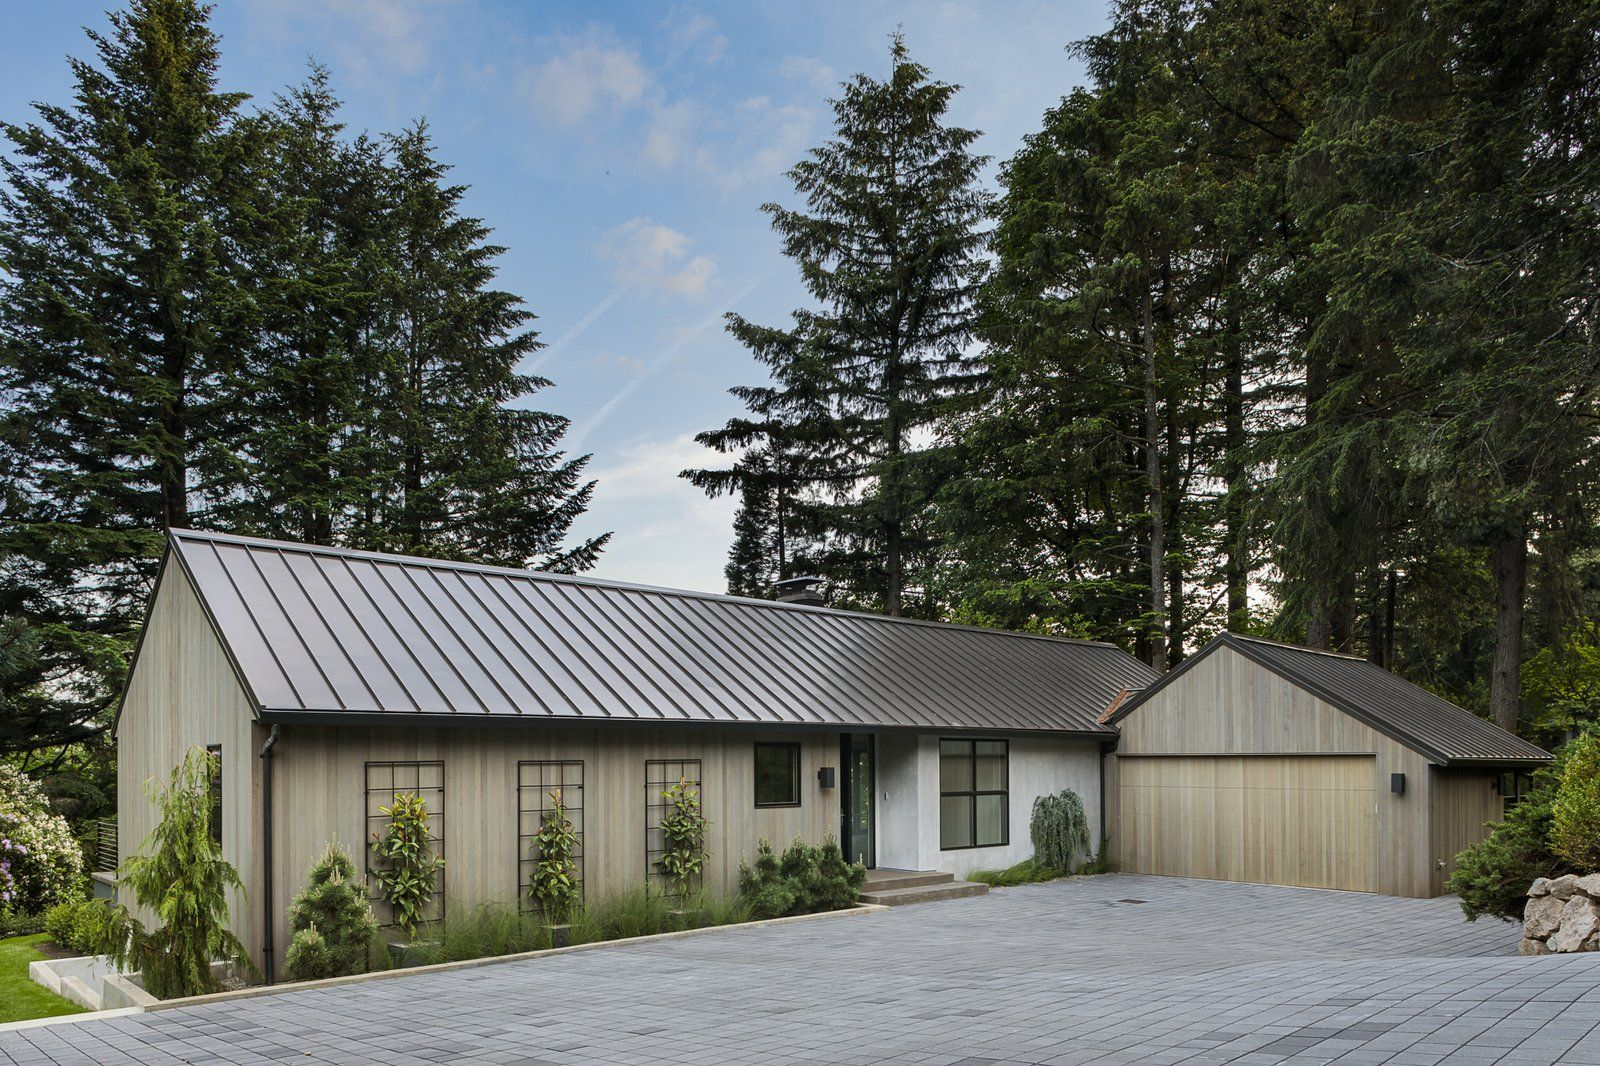 Exterior Mid Century Building Type Wood Siding Material Gable Roofline Metal Roof Material House Bu Portland Real Estate Architecture Details Architecture